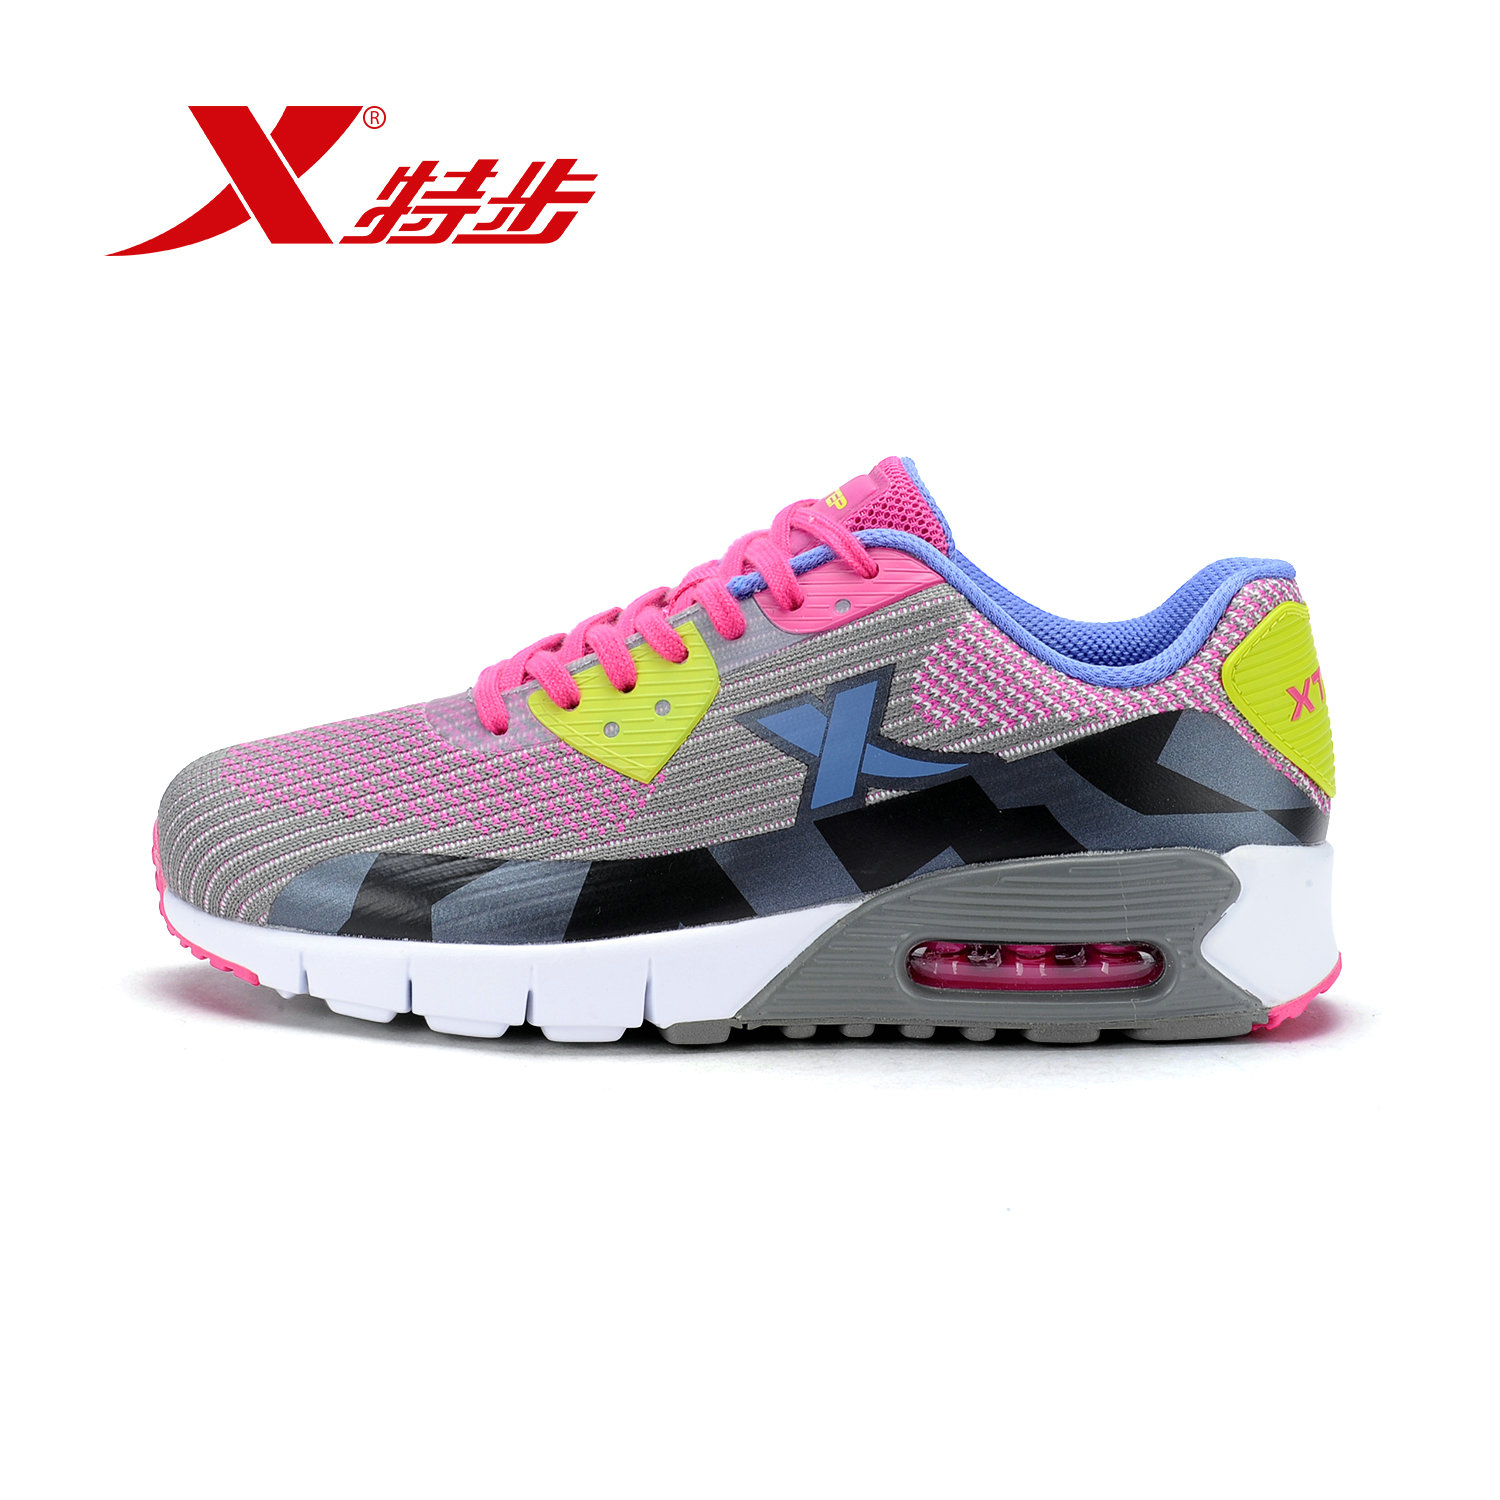 Xtep official authentic fashion women's casual shoes in 2016 spring and summer new colorful sports shoes slip comfort